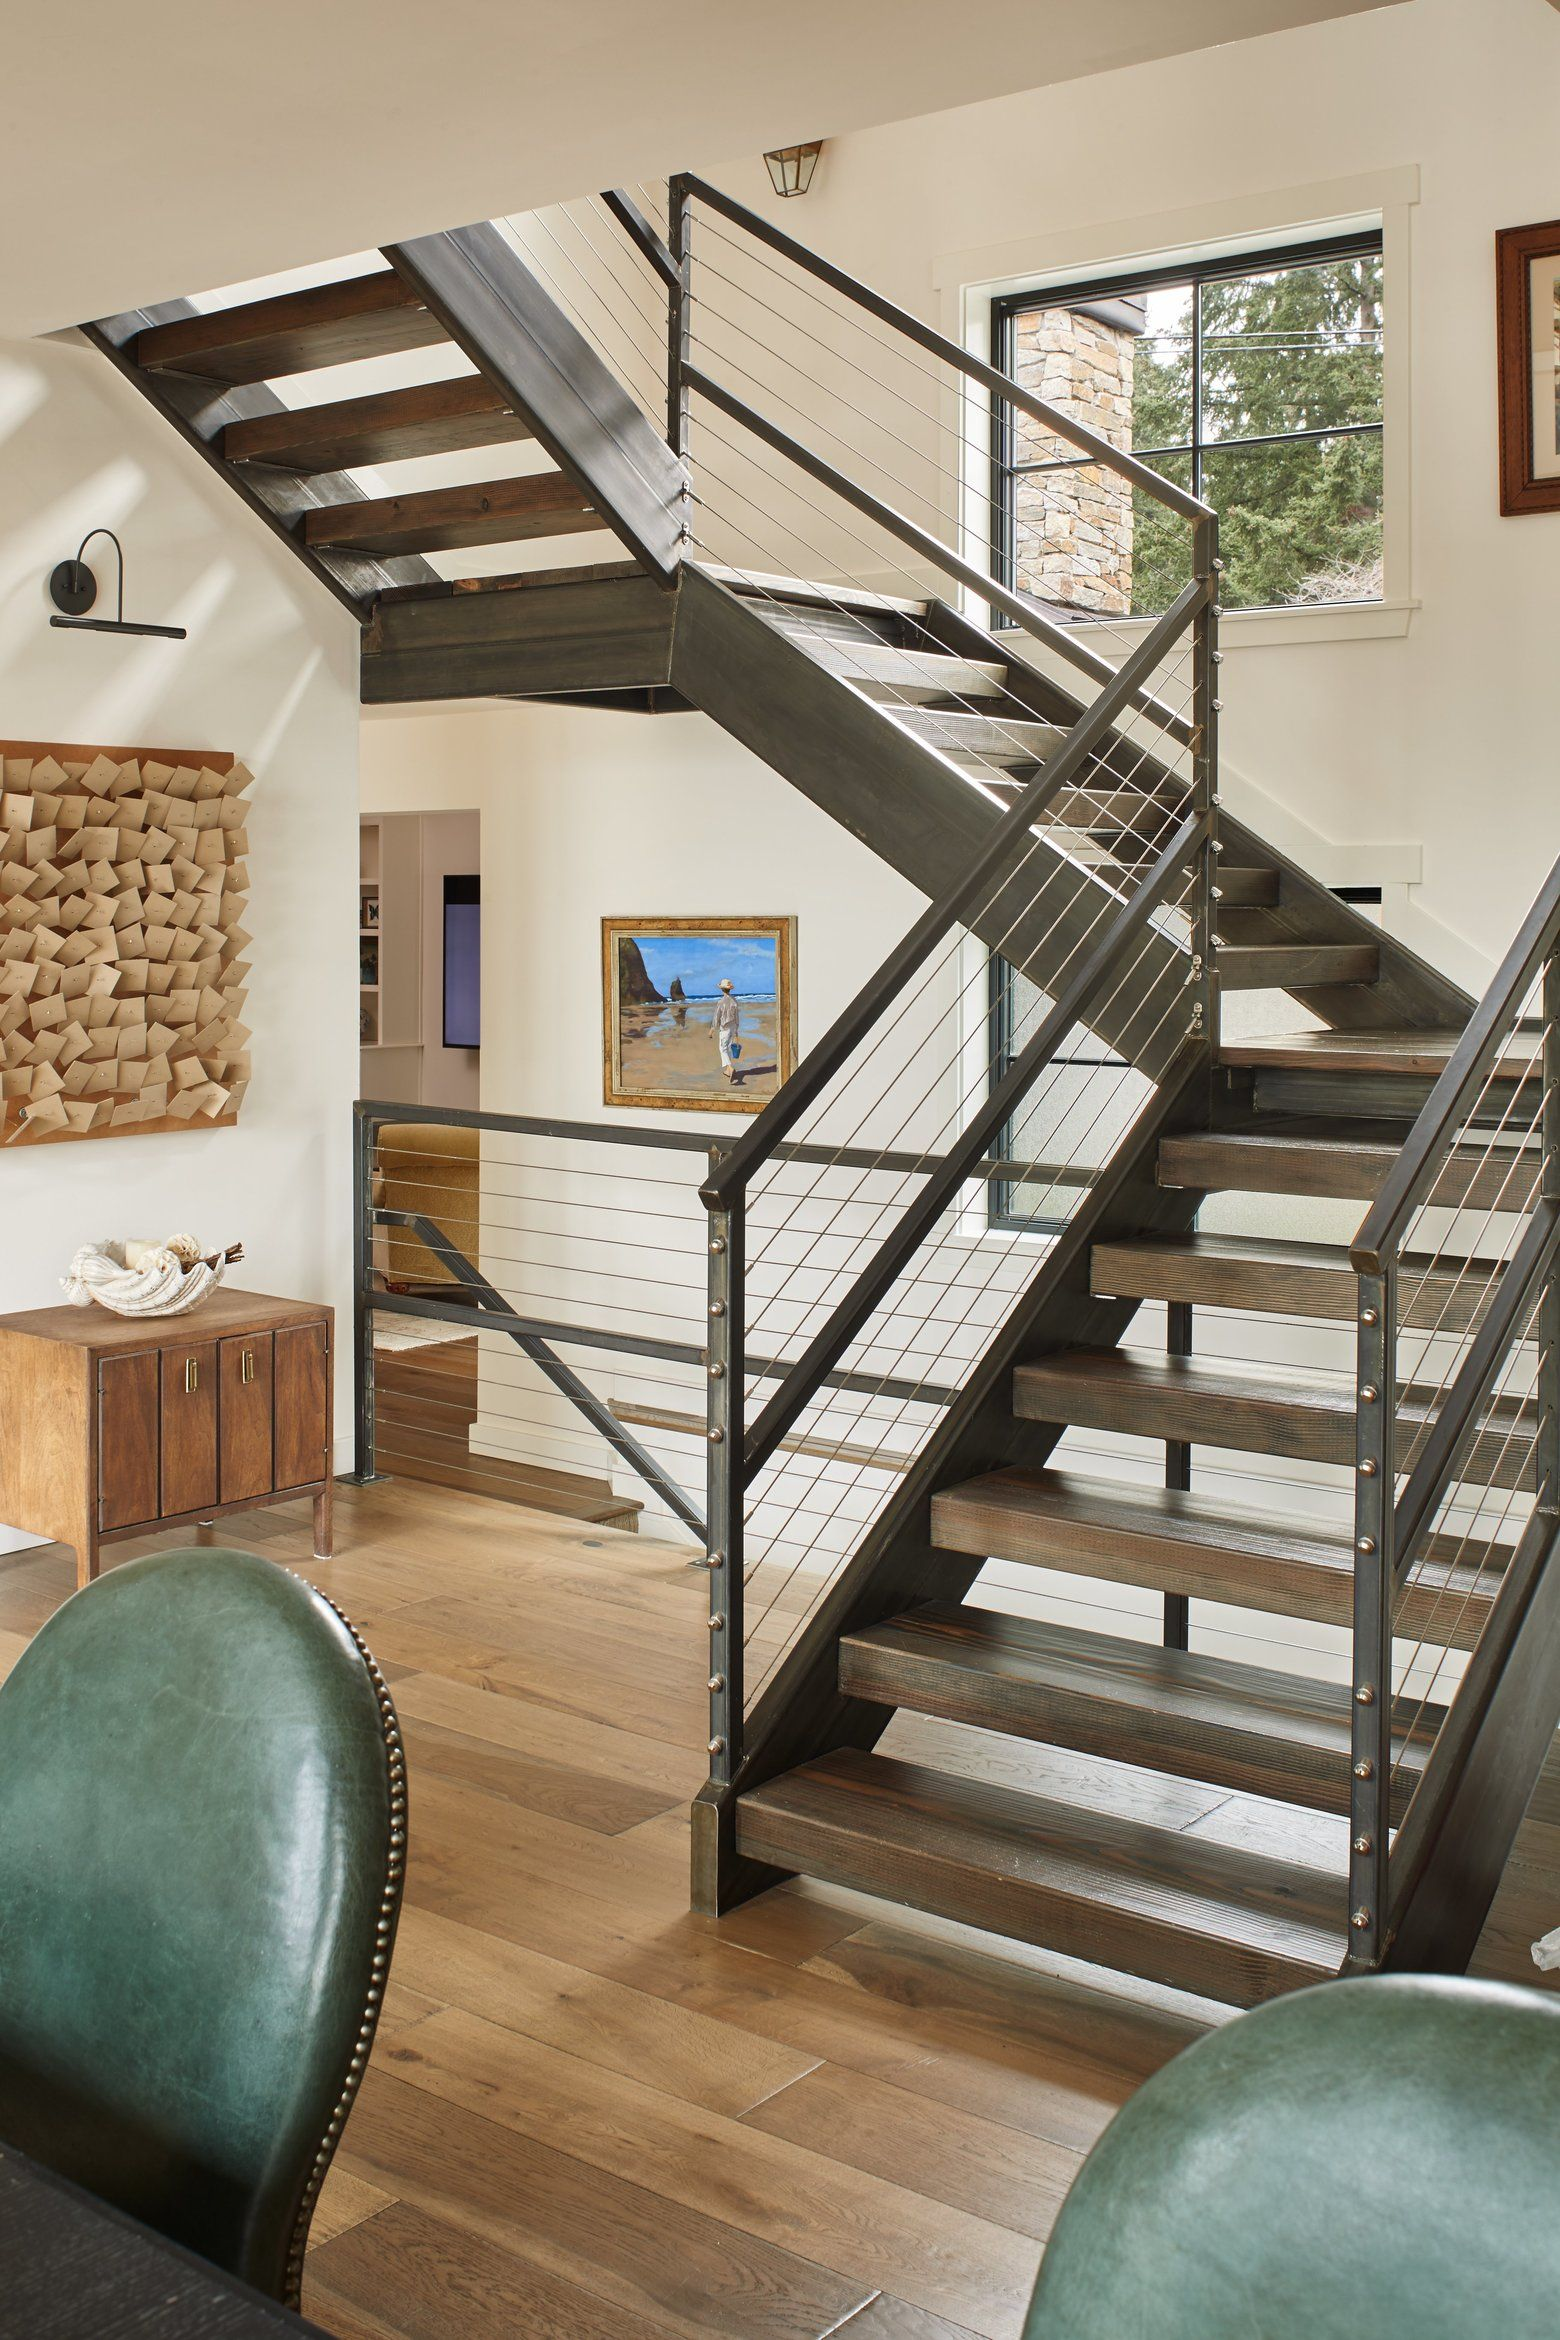 The open staircase to the new second floor (designed and